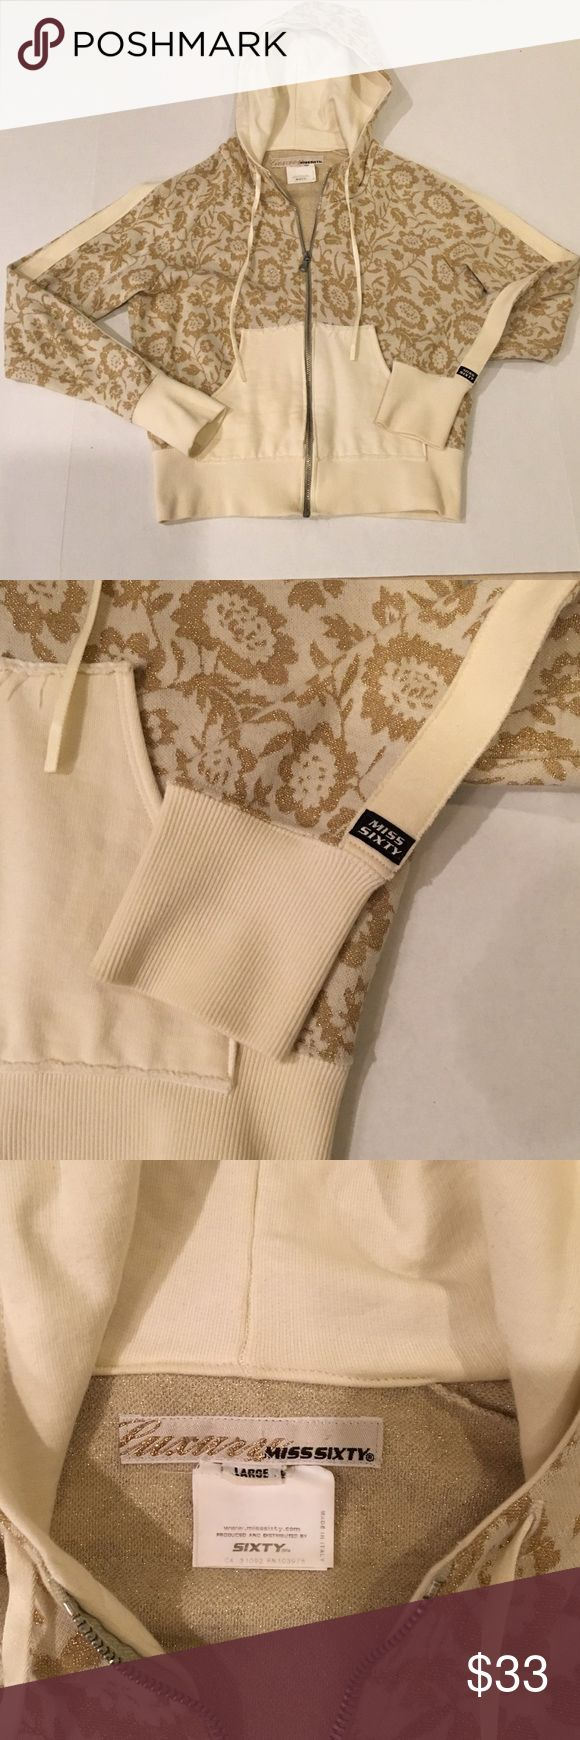 Zip up hoodie in gold brocade.  Fabulous! LUXURY MISS SIXTY zip up hoodie.  This is a fabulous and unique piece! Great condition. Miss Sixty Tops Sweatshirts & Hoodies